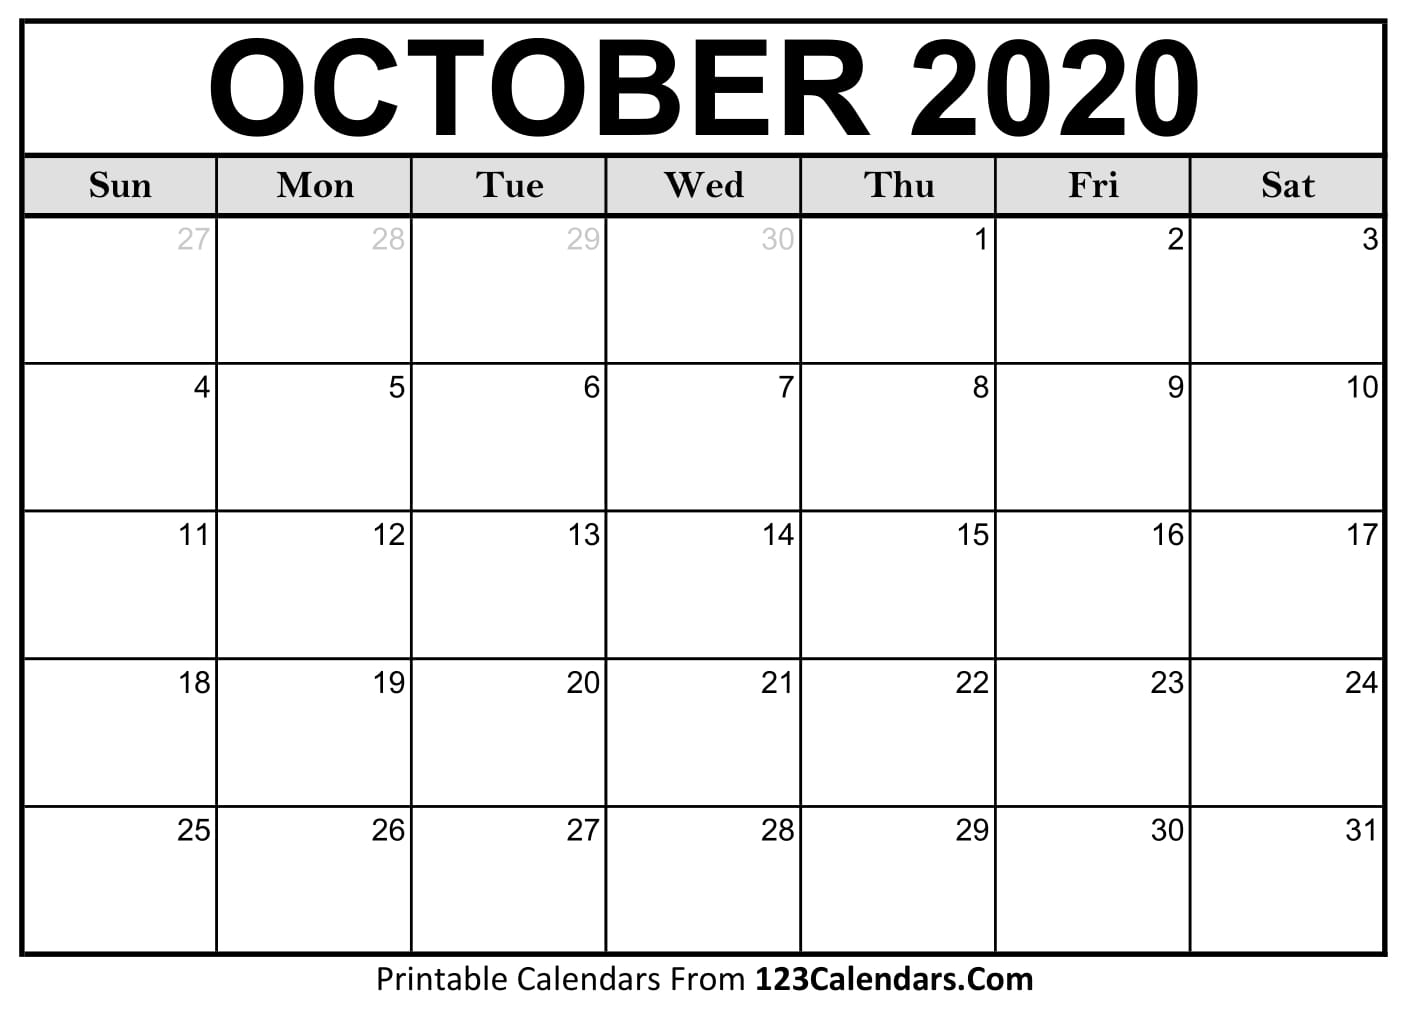 October 2020 Printable Calendar | 123Calendars in Vertex 2020 Calendars Monday Through Sunday